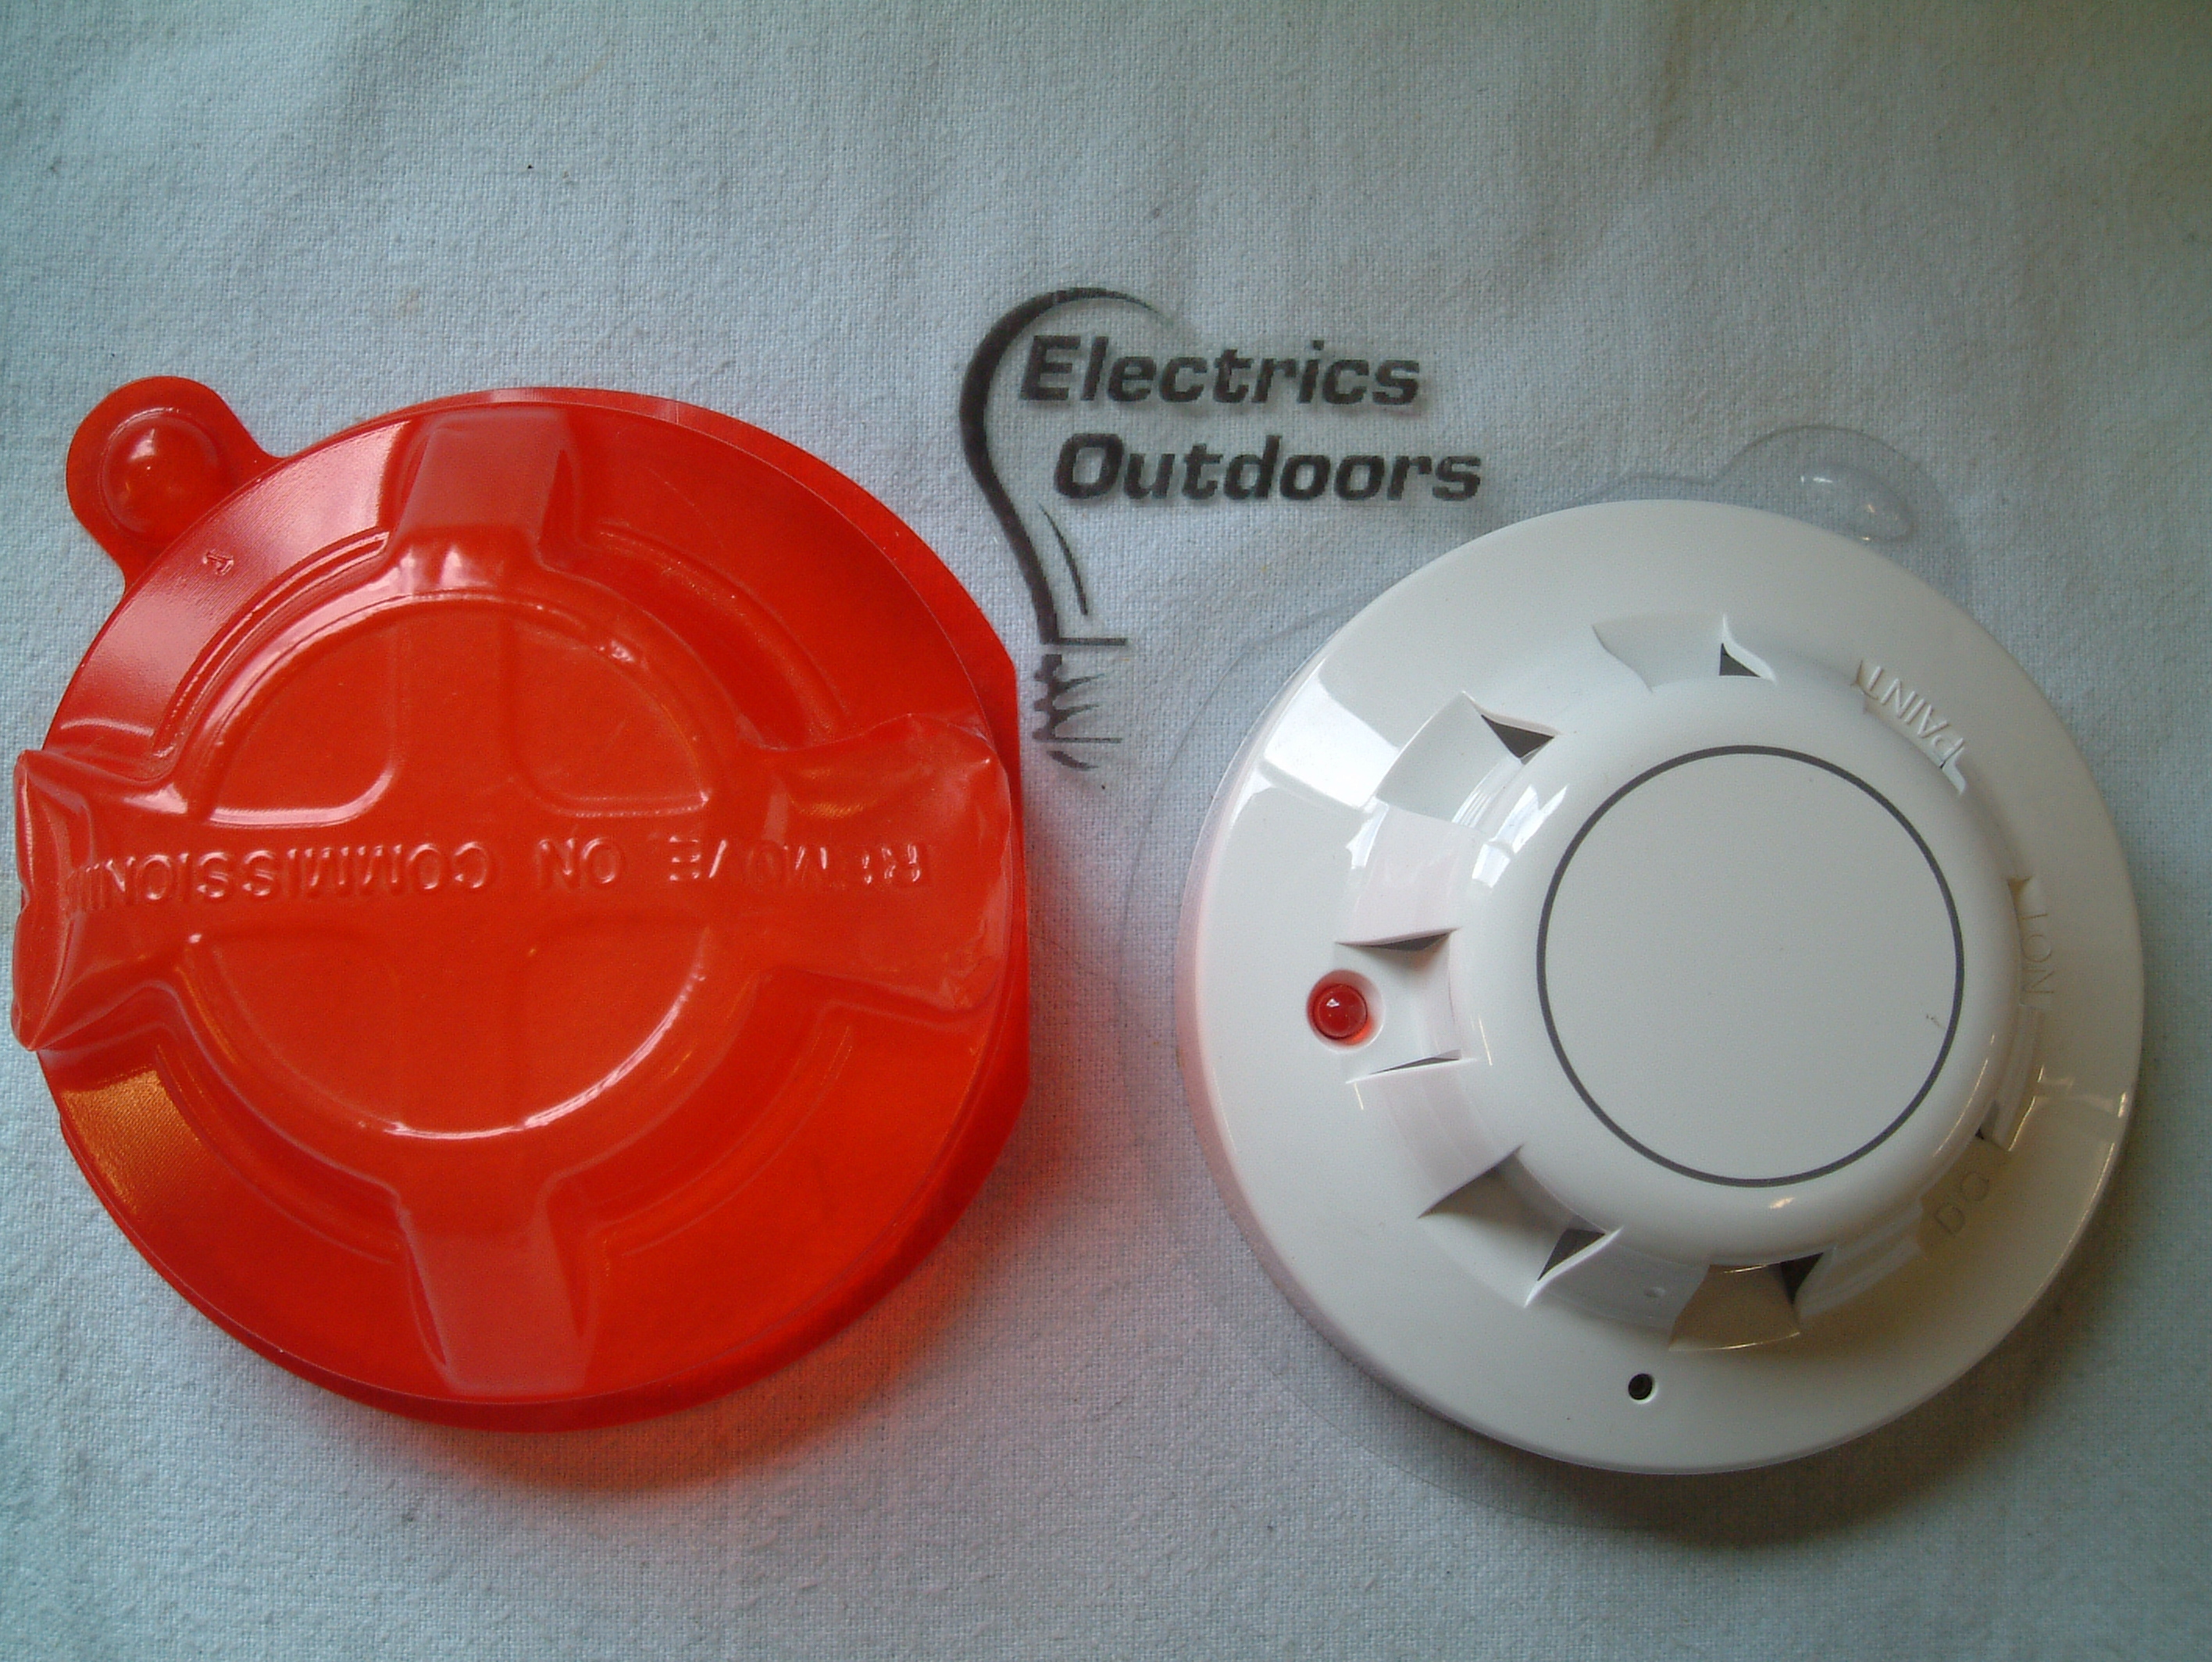 XP95 IONISATION SMOKE DETECTOR 55000-500 APO 17-28 V DC